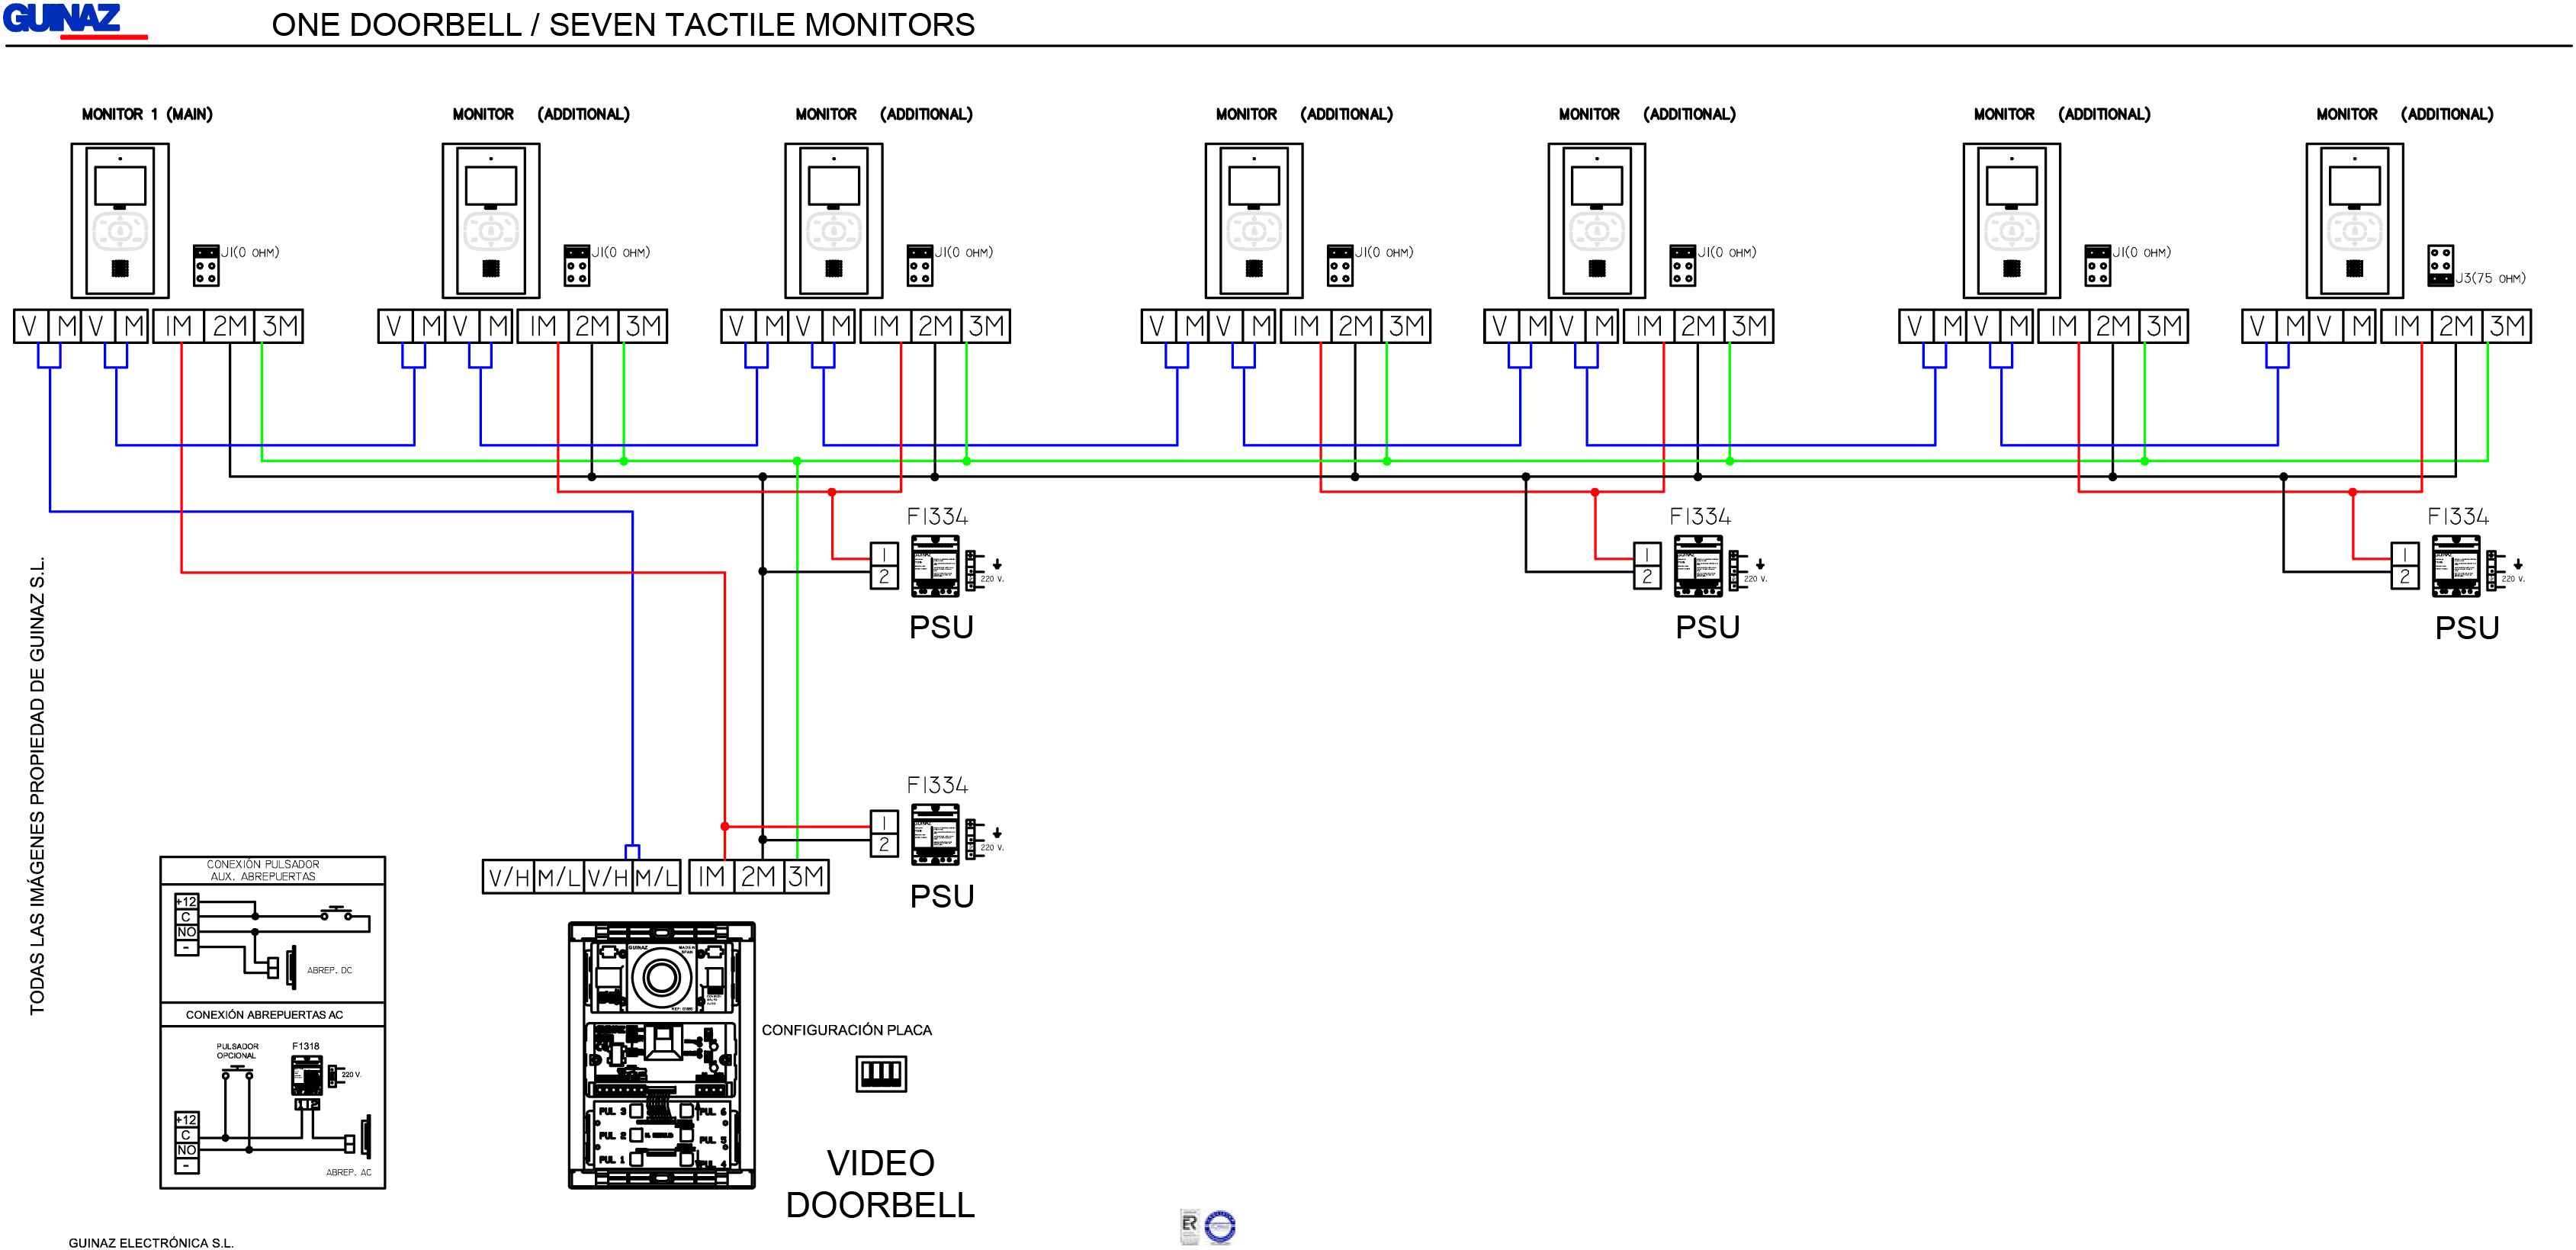 Daisy Chain Monitors Wiring Diagram Diagram Base Website Wiring